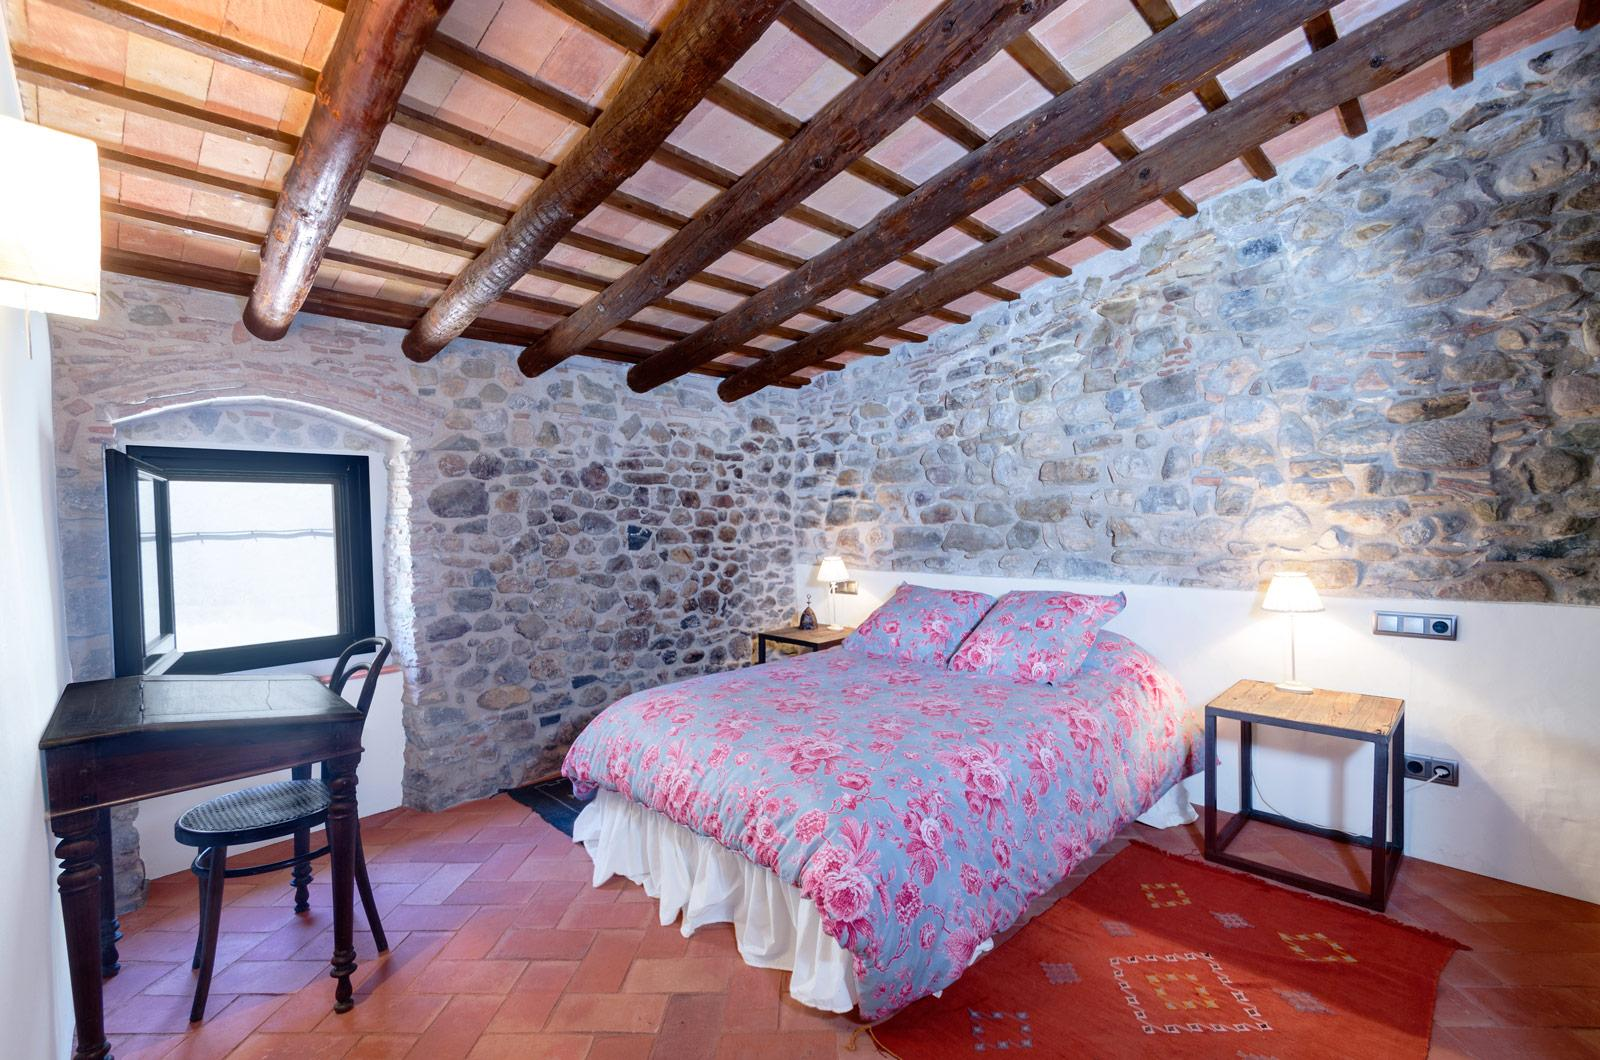 17. Villa for sale in Girona - Traditional Masia, Catalonia country house, for sale in Girona